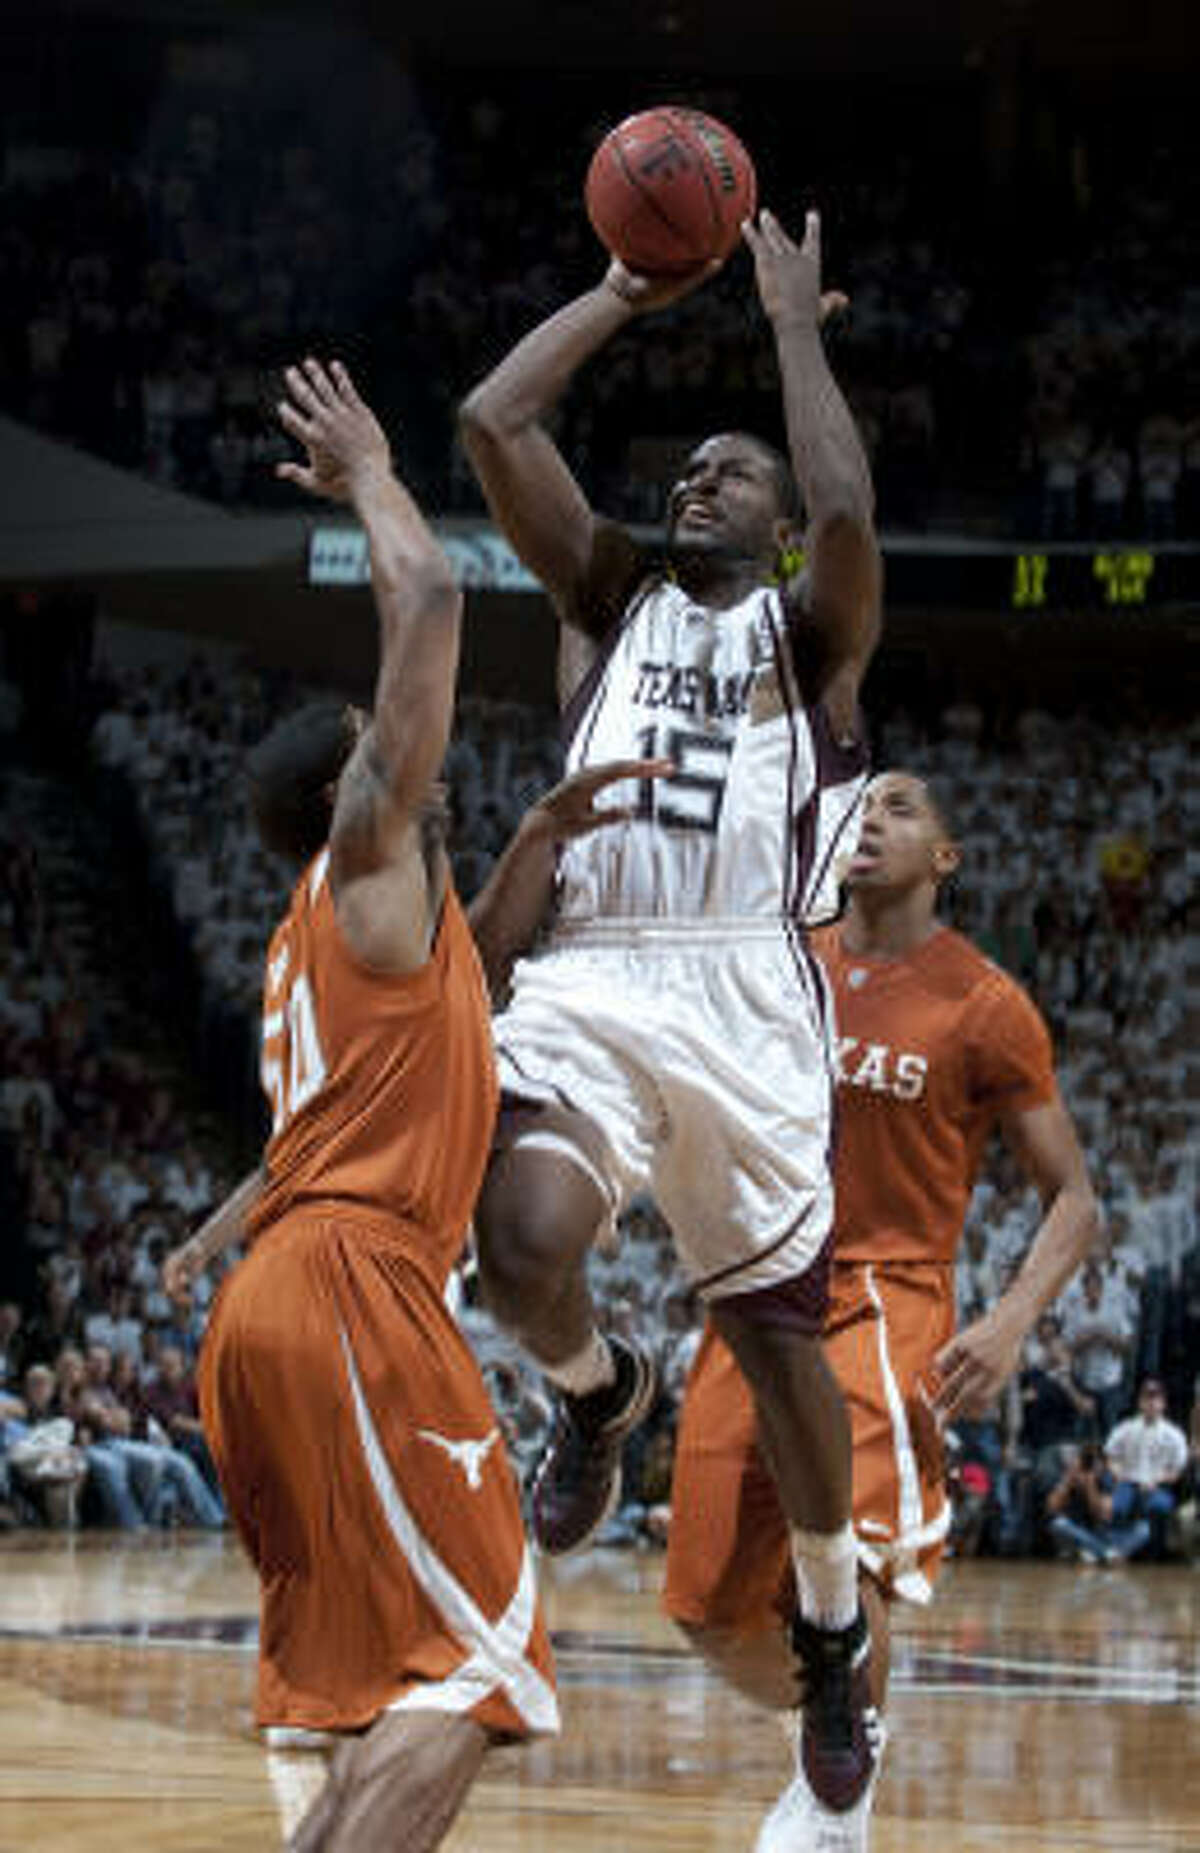 Texas A&M's Donald Sloan goes up for a shot during the Aggies' 81-66 win over the Longhorns on Feb. 16.